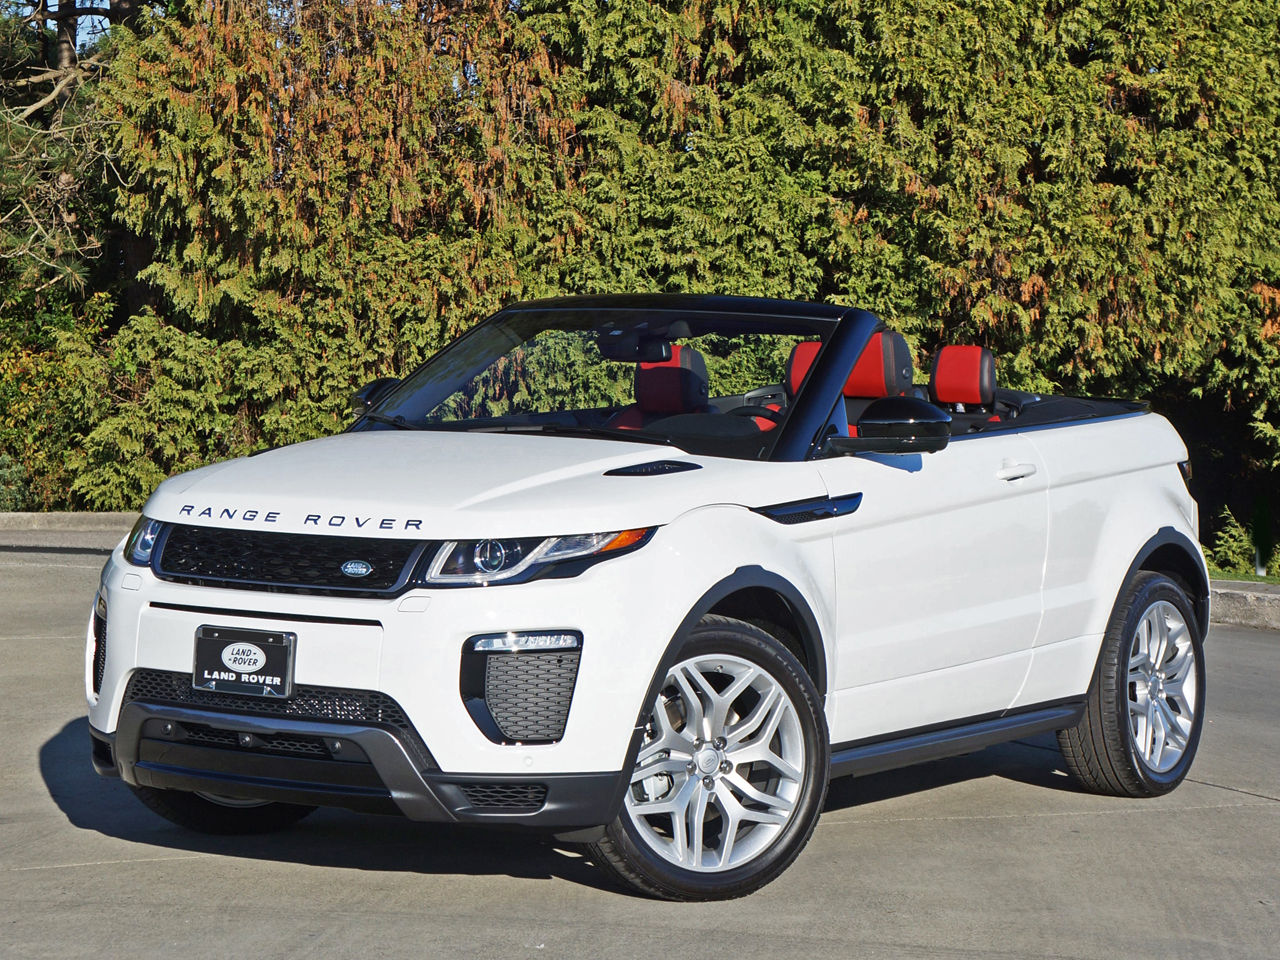 2017 range rover evoque convertible road test review carcostcanada. Black Bedroom Furniture Sets. Home Design Ideas